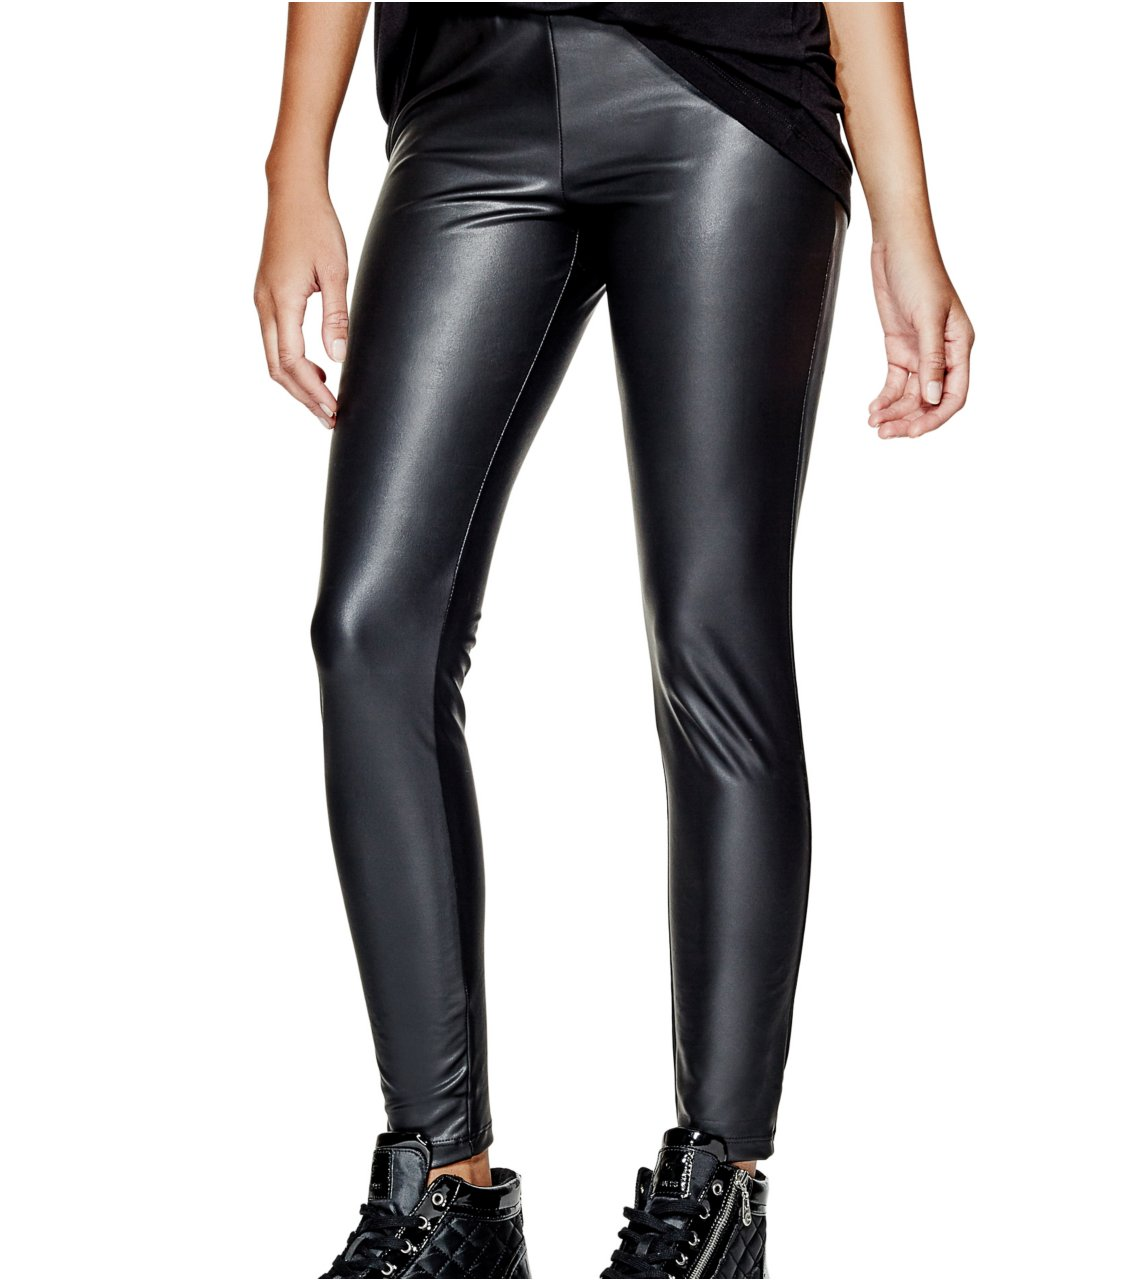 G by GUESS Matte Liquid Leggings, JET BLACK (XS)